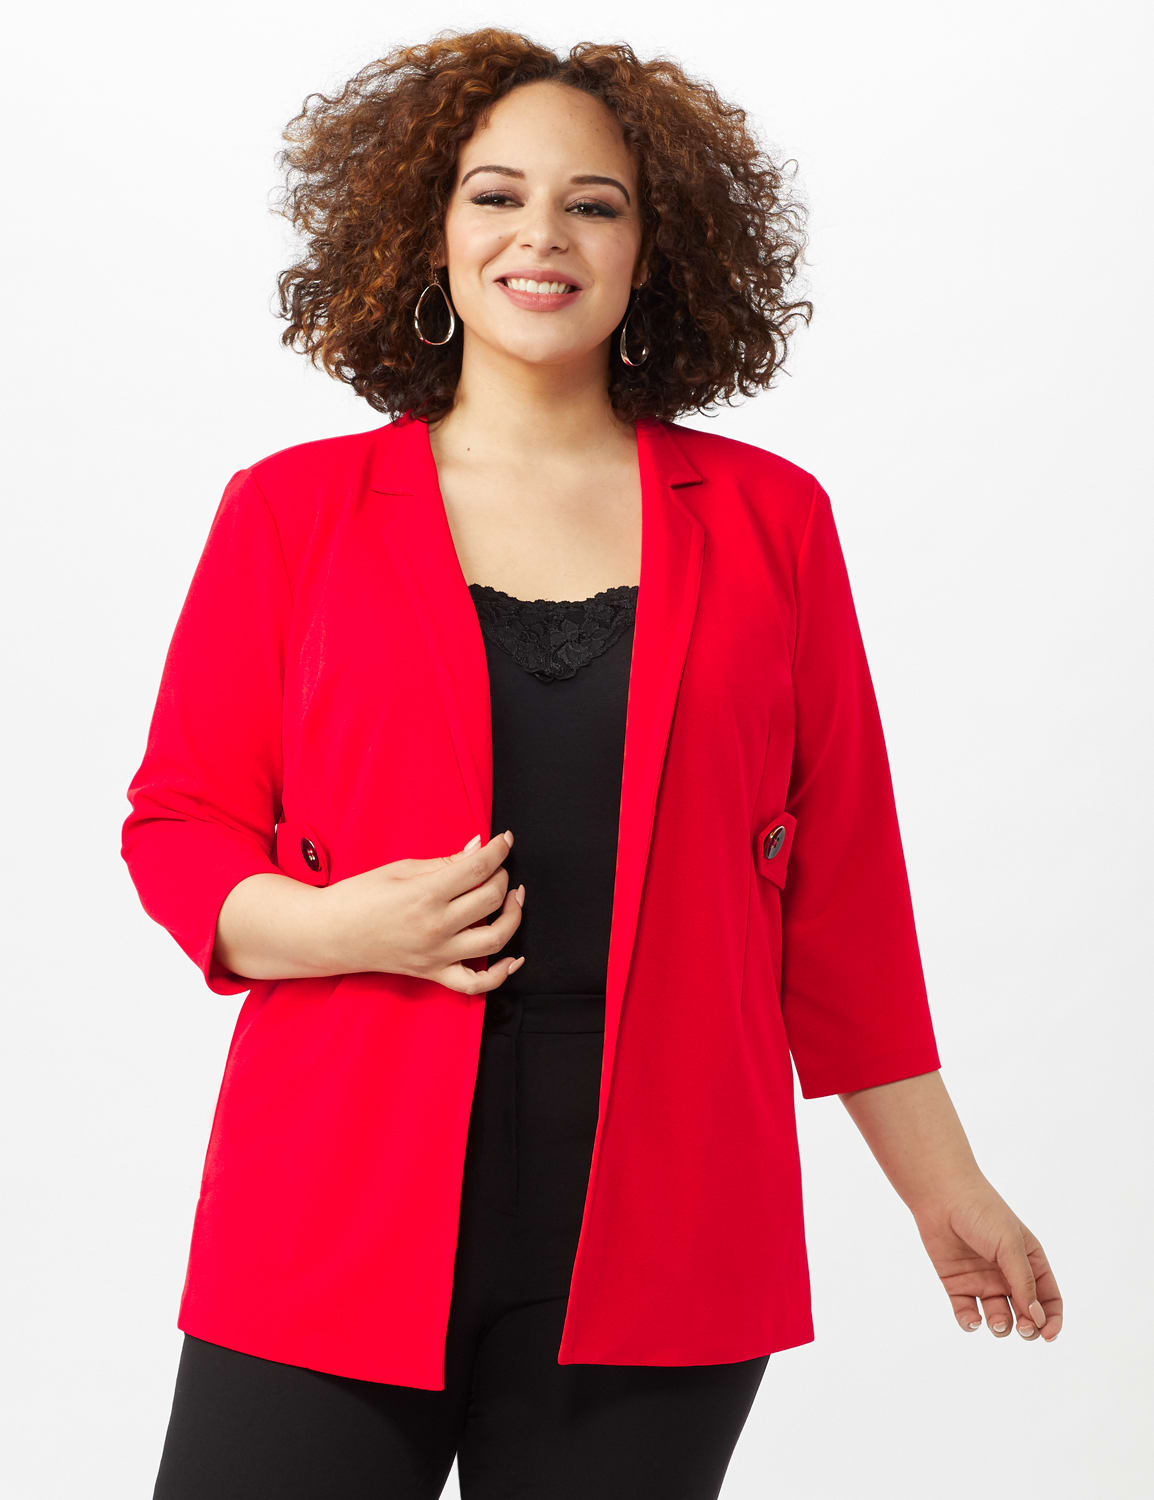 Collar - Less Notched Topper With Buttons Side Tabs - Infared - Front